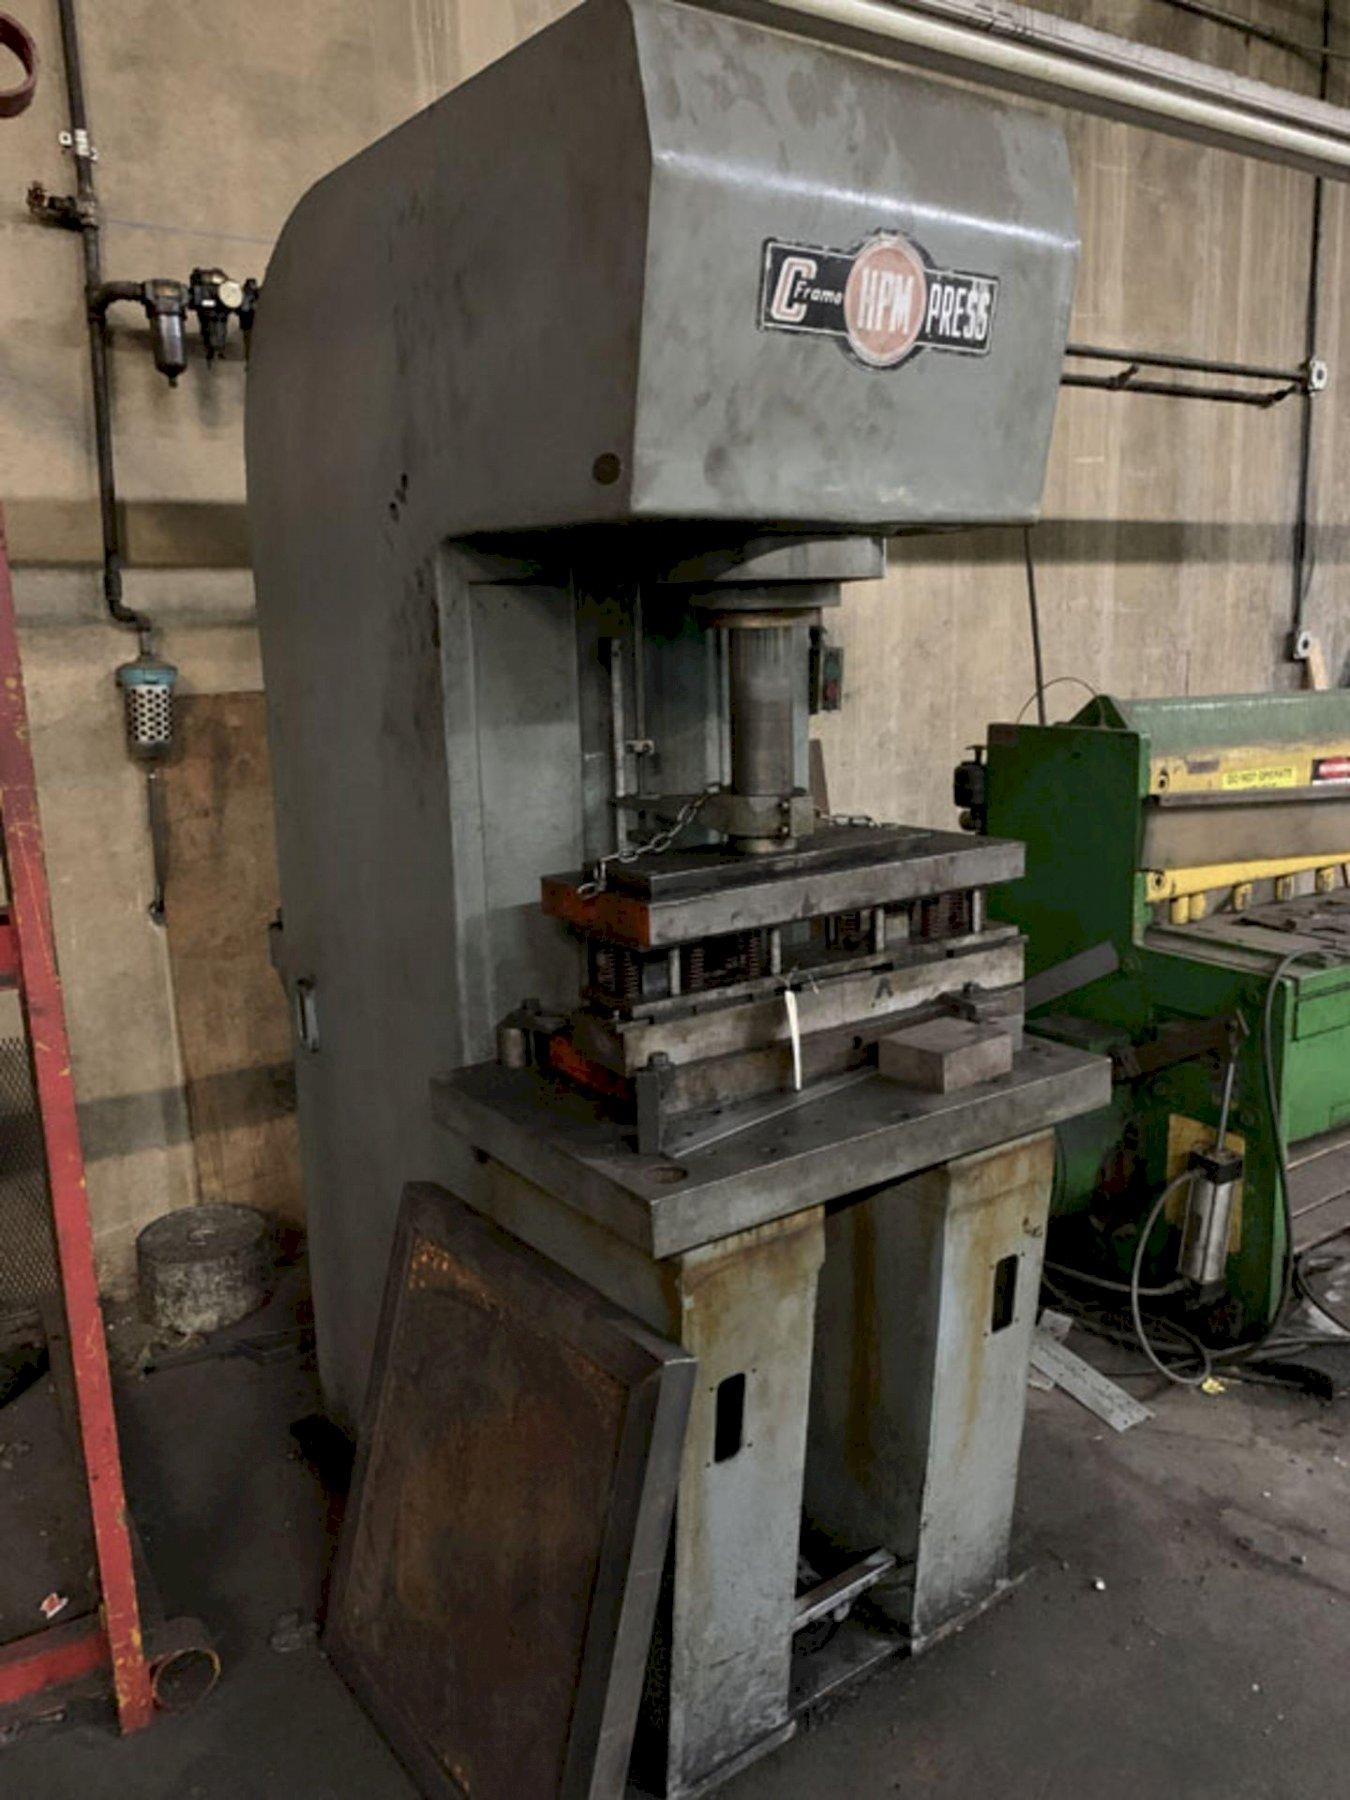 15 TON HPM C-15 C FRAME HYDRAULIC PRESS. STOCK # 0732320